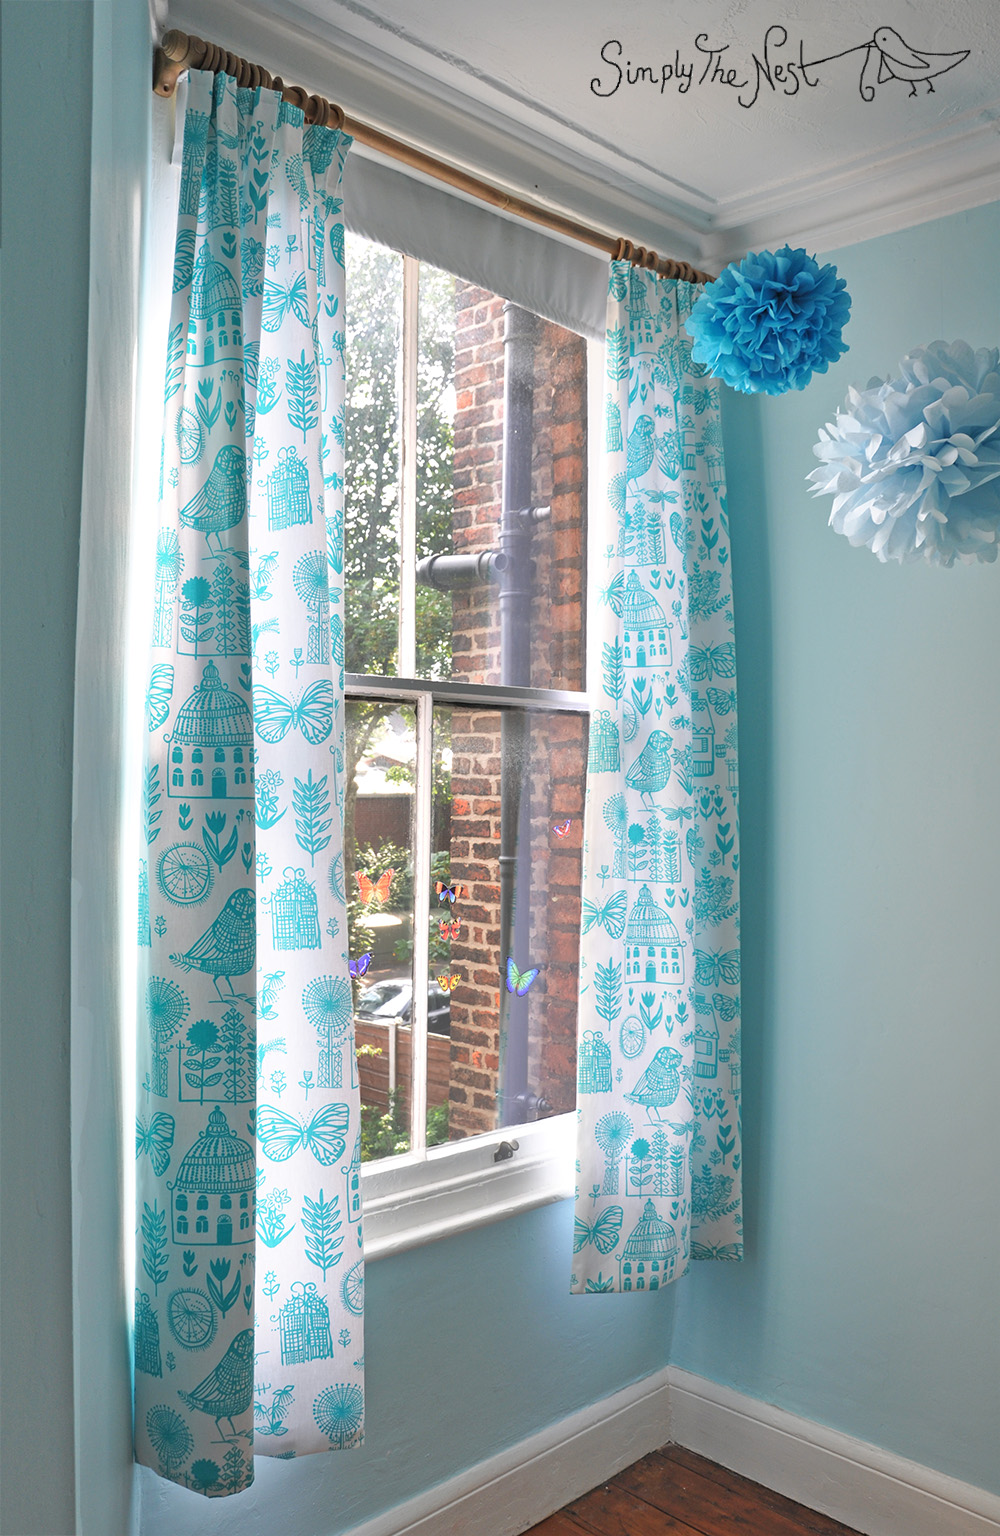 Turquoise curtains for a baby girl's nursery using Designer's Guild Boqueria fabric - a project by Simply The Nest, a UK DIY renovation blog